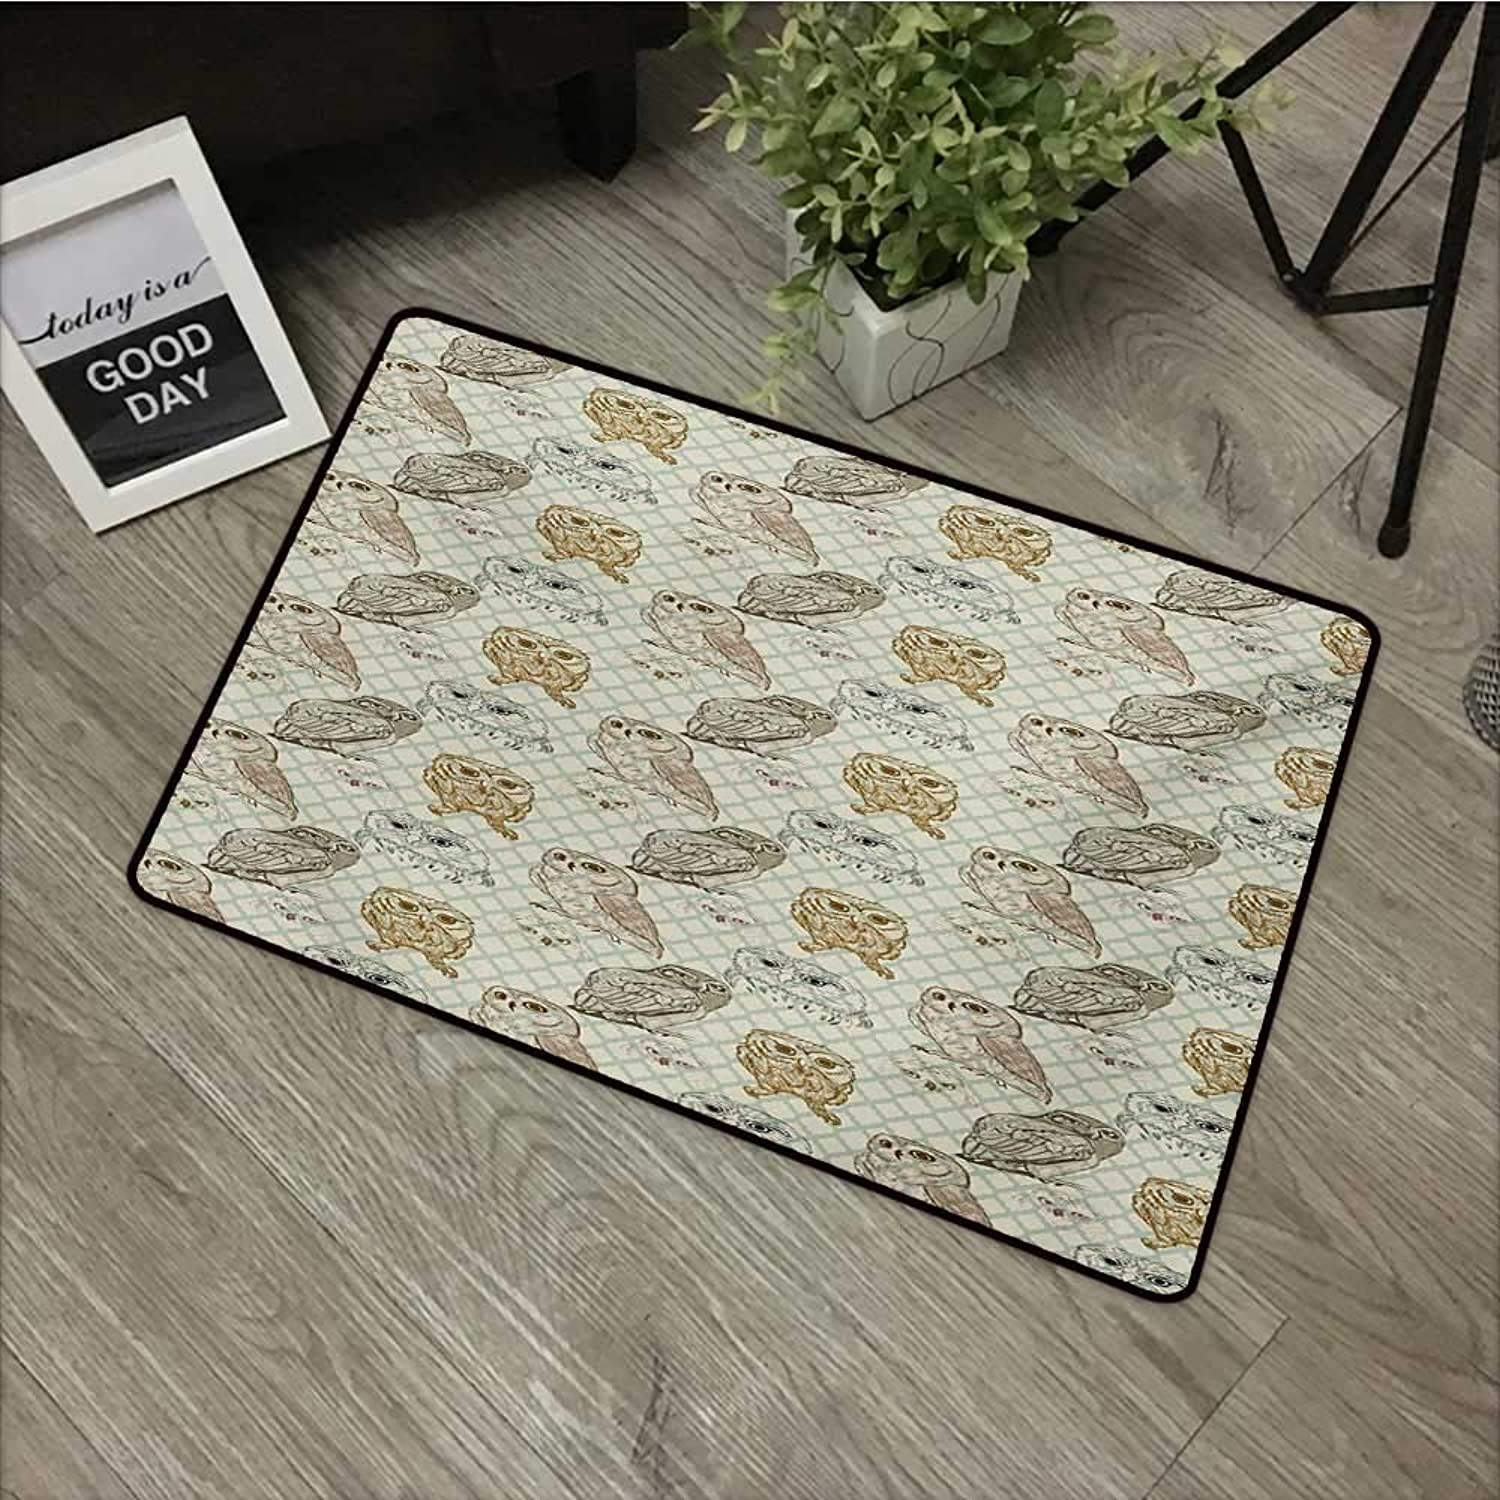 Corridor Door mat W35 x L59 INCH Owl,Cool Looking Owls Different Shapes and Sizes Drawing Style Sketch Pattern Print,Brown Reseda Green Non-Slip Door Mat Carpet